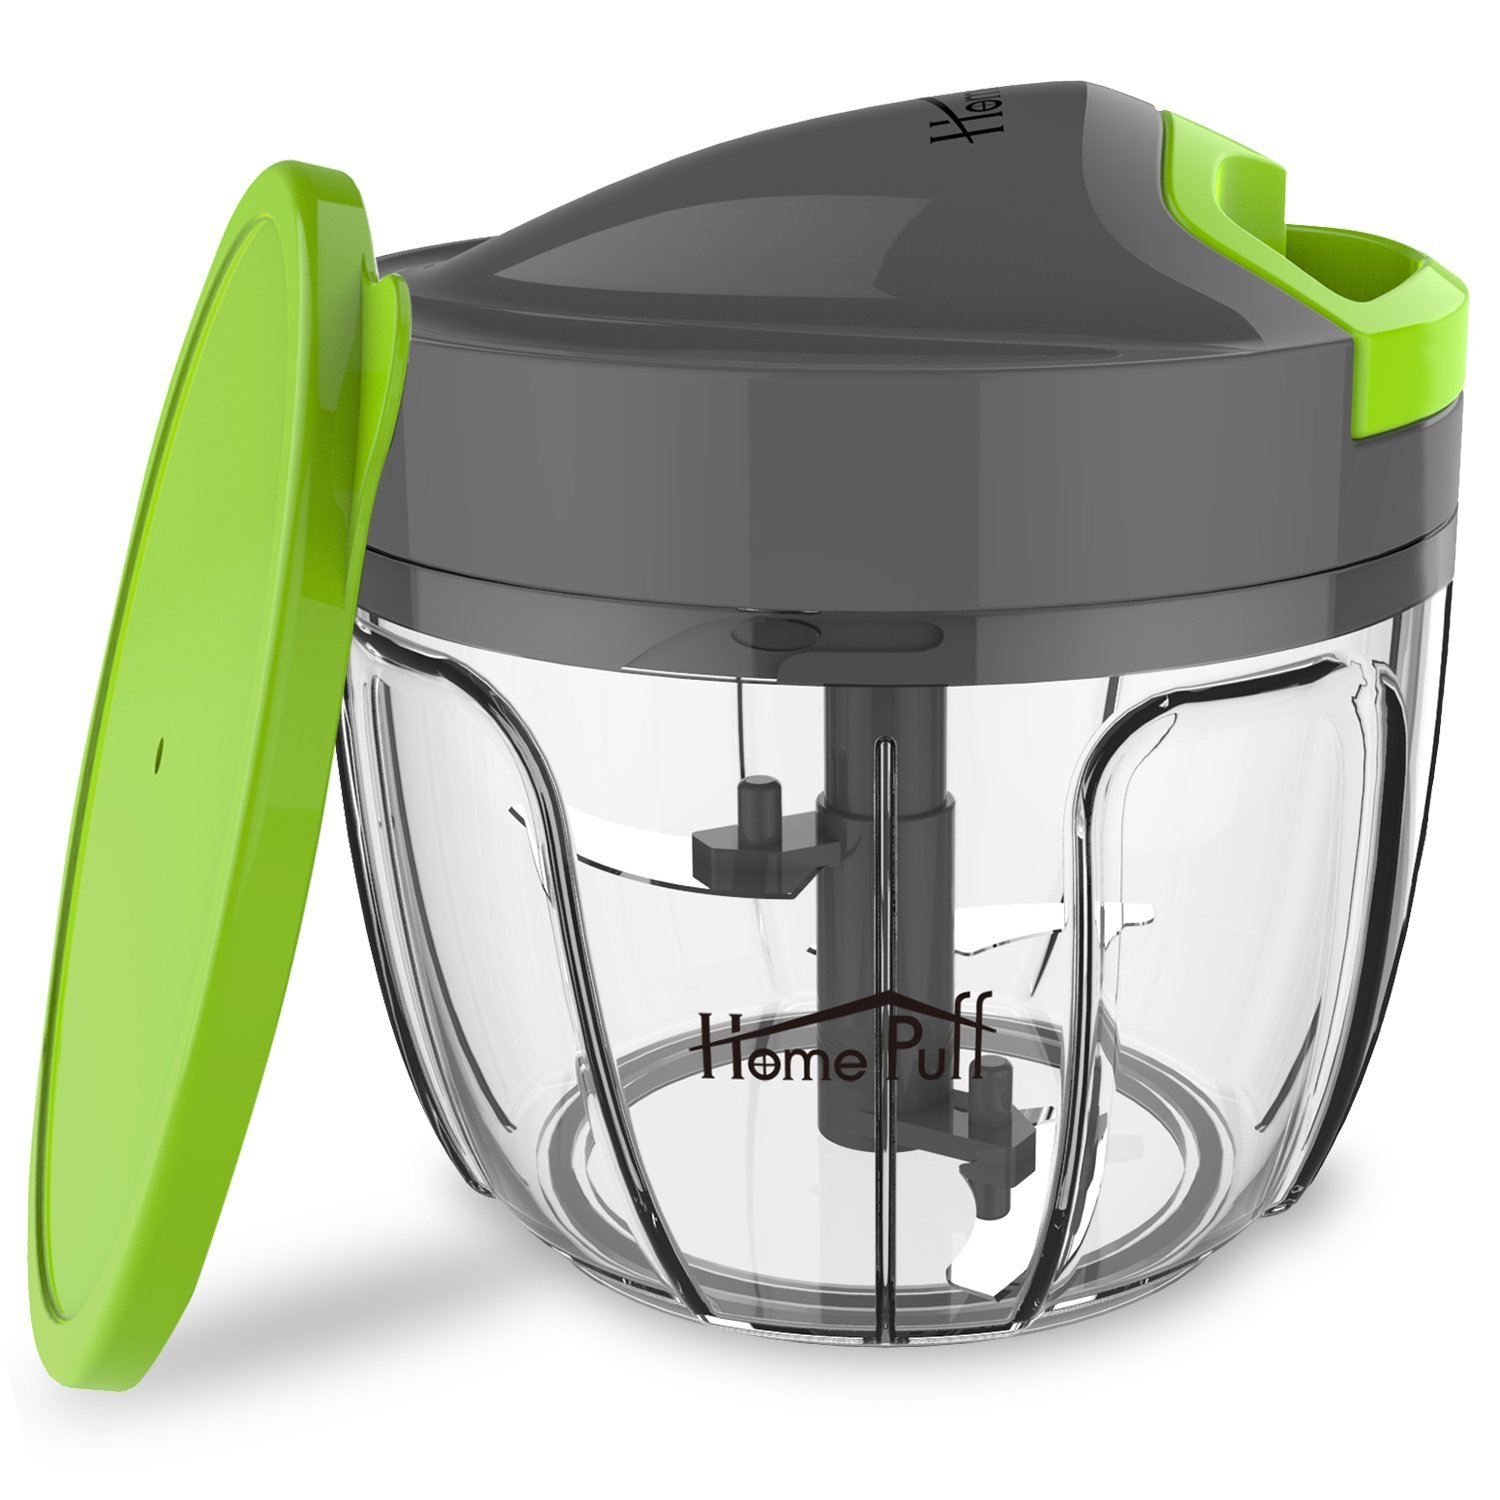 Home Puff H12 0.65-Liter Chopper with Storage Lid (Green) product image